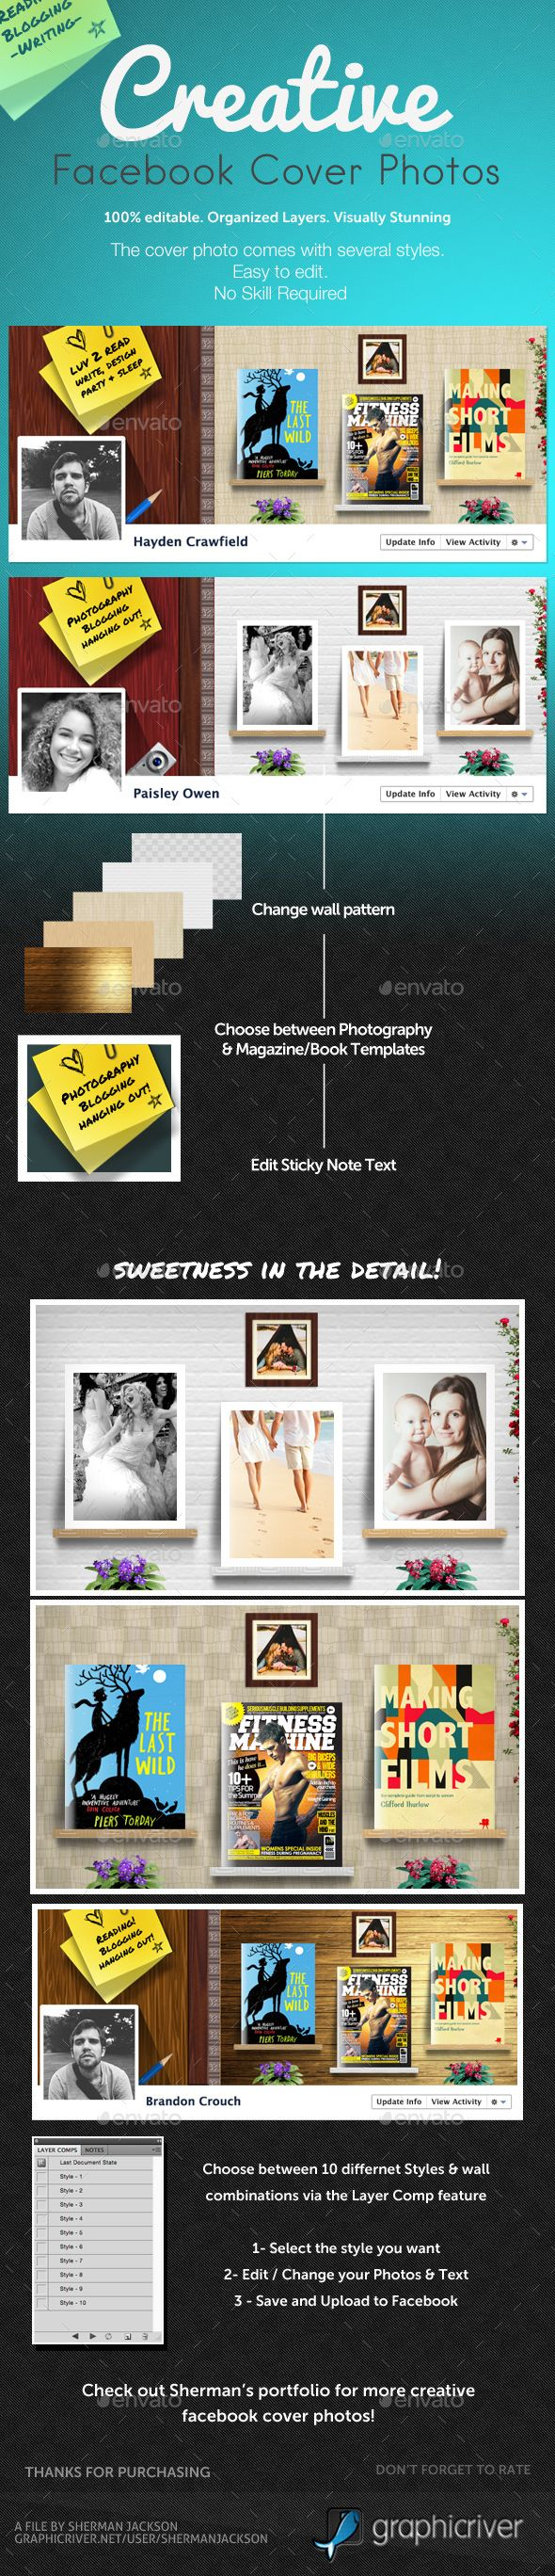 Creative Facebook Cover Photo Template PSD. Download here: http://graphicriver.net/item/creative-facebook-cover-photo/14901260?ref=ksioks